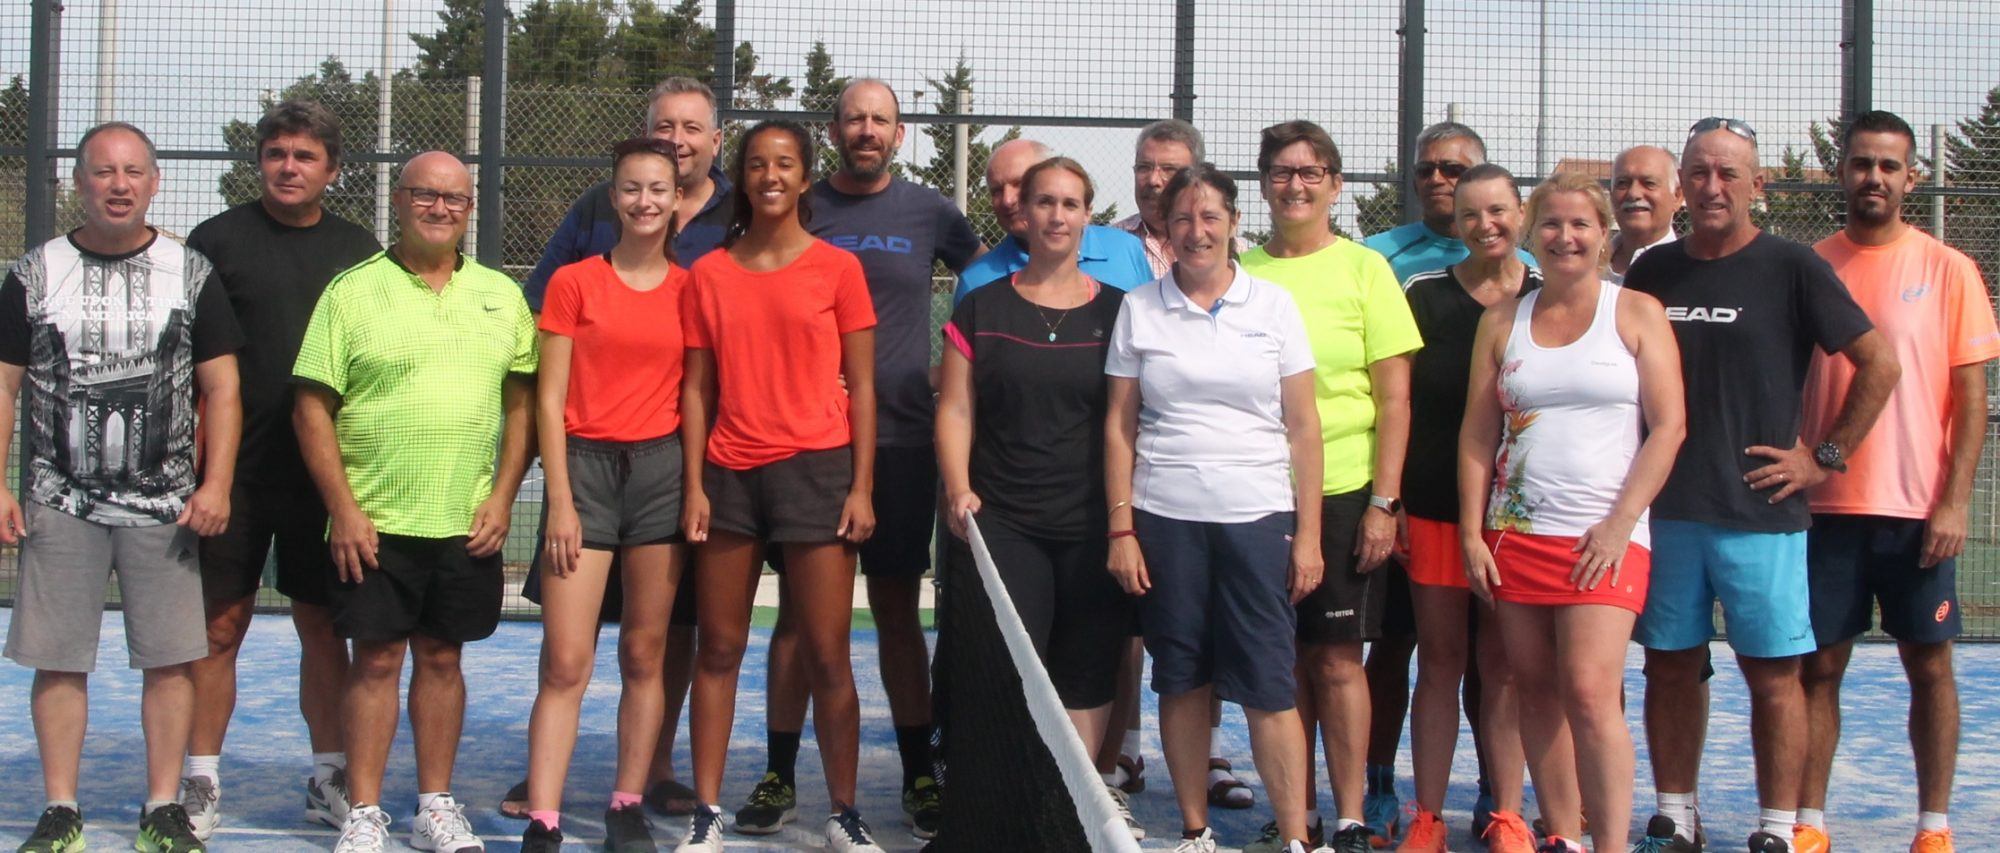 1ère édition d'un tournoi de PADEL P100, qualificatif du « National Padel Cup »